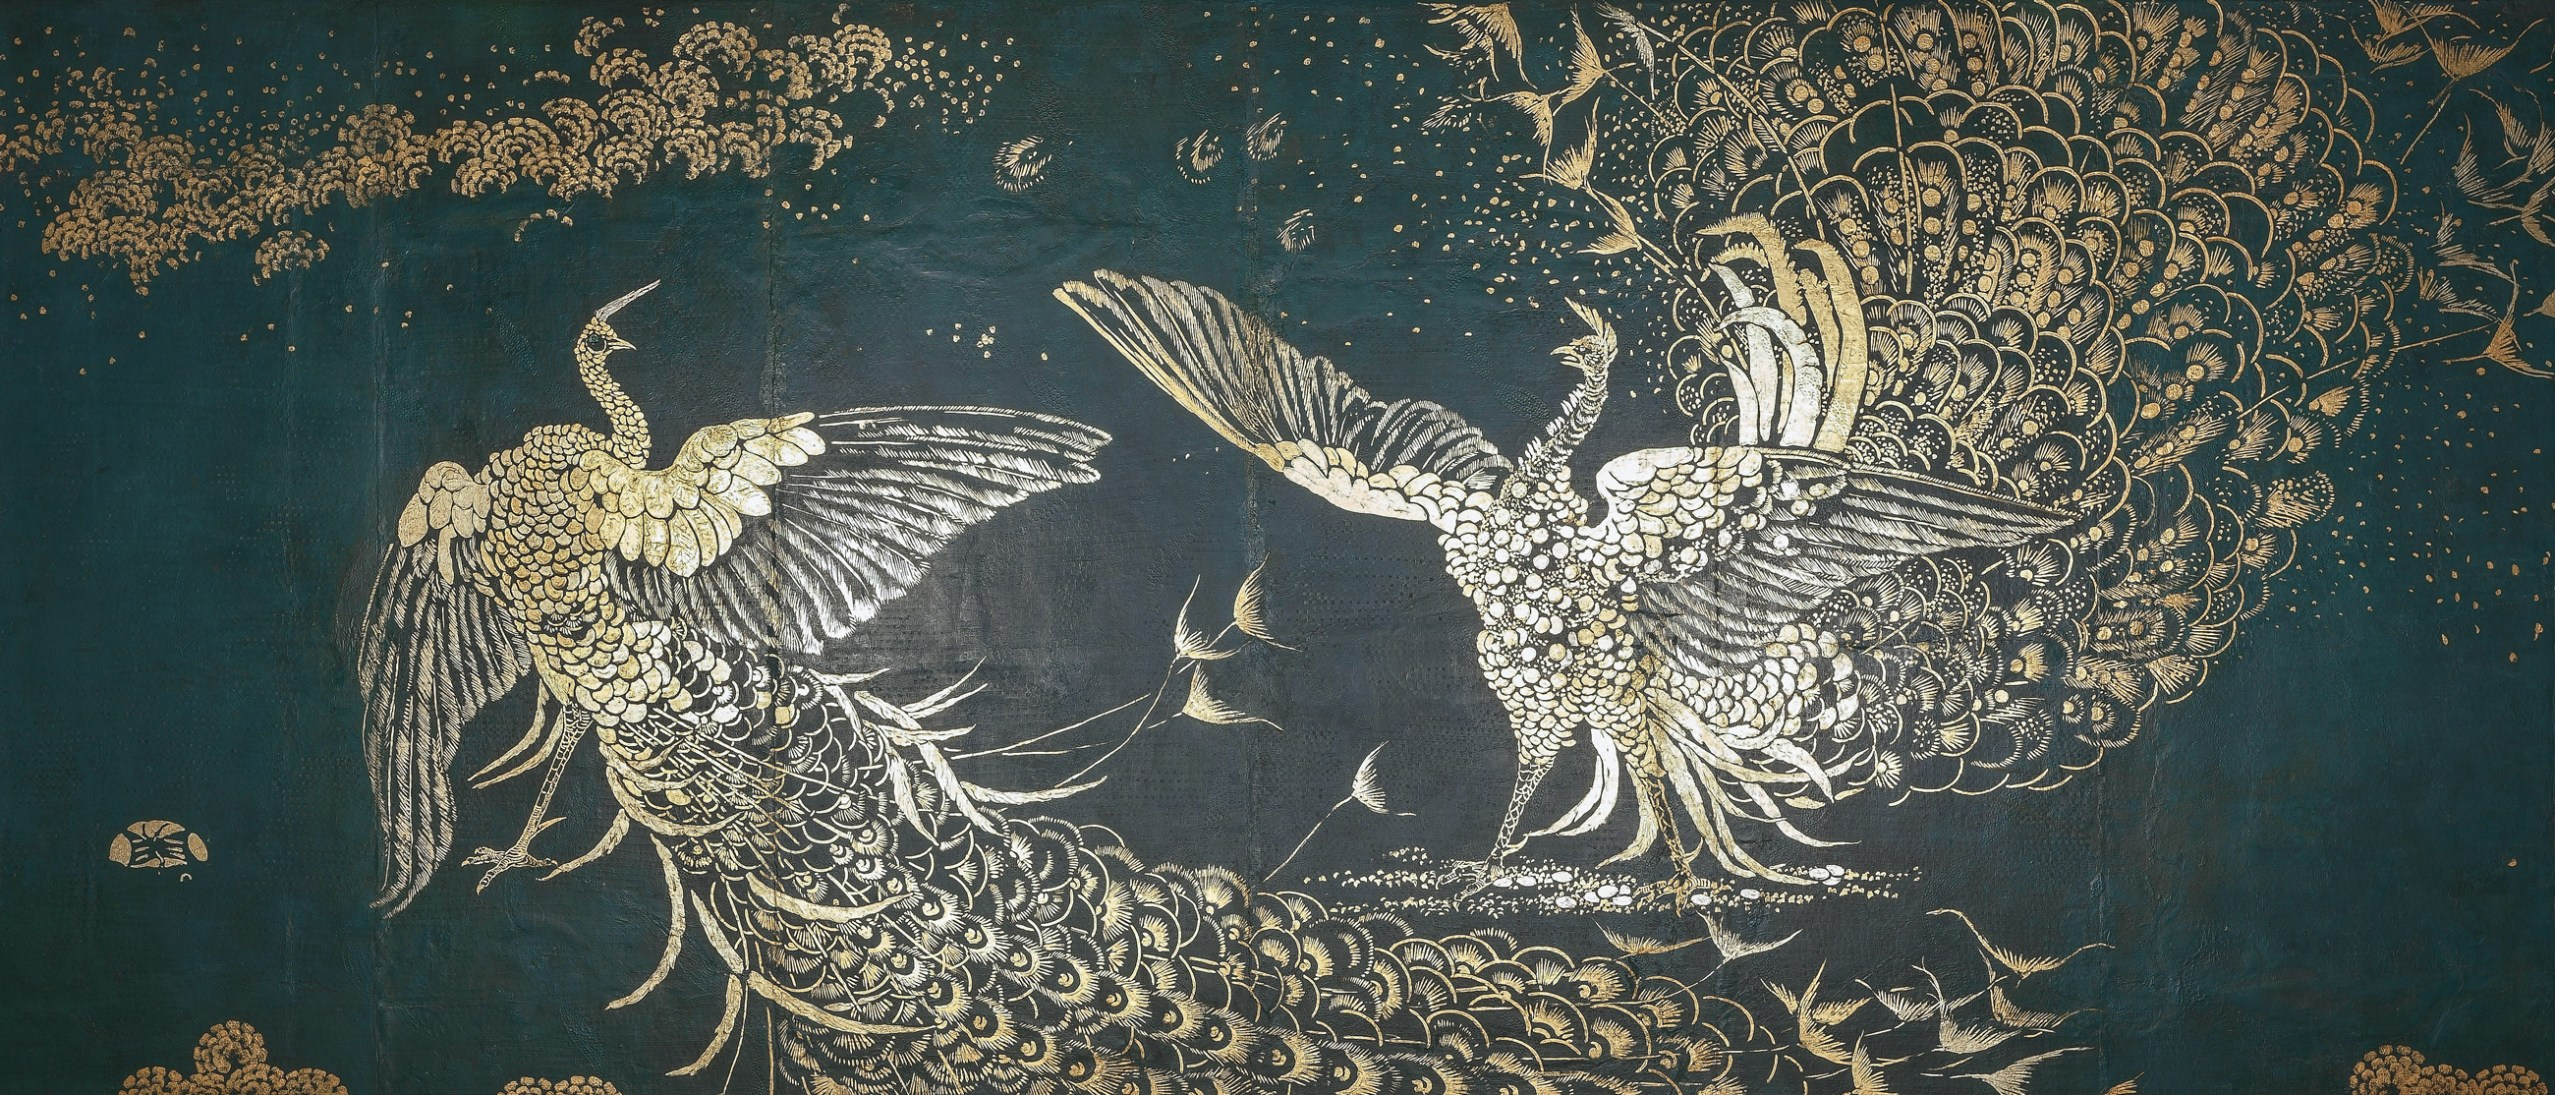 detail, fighting peacocks in the Peacock Room